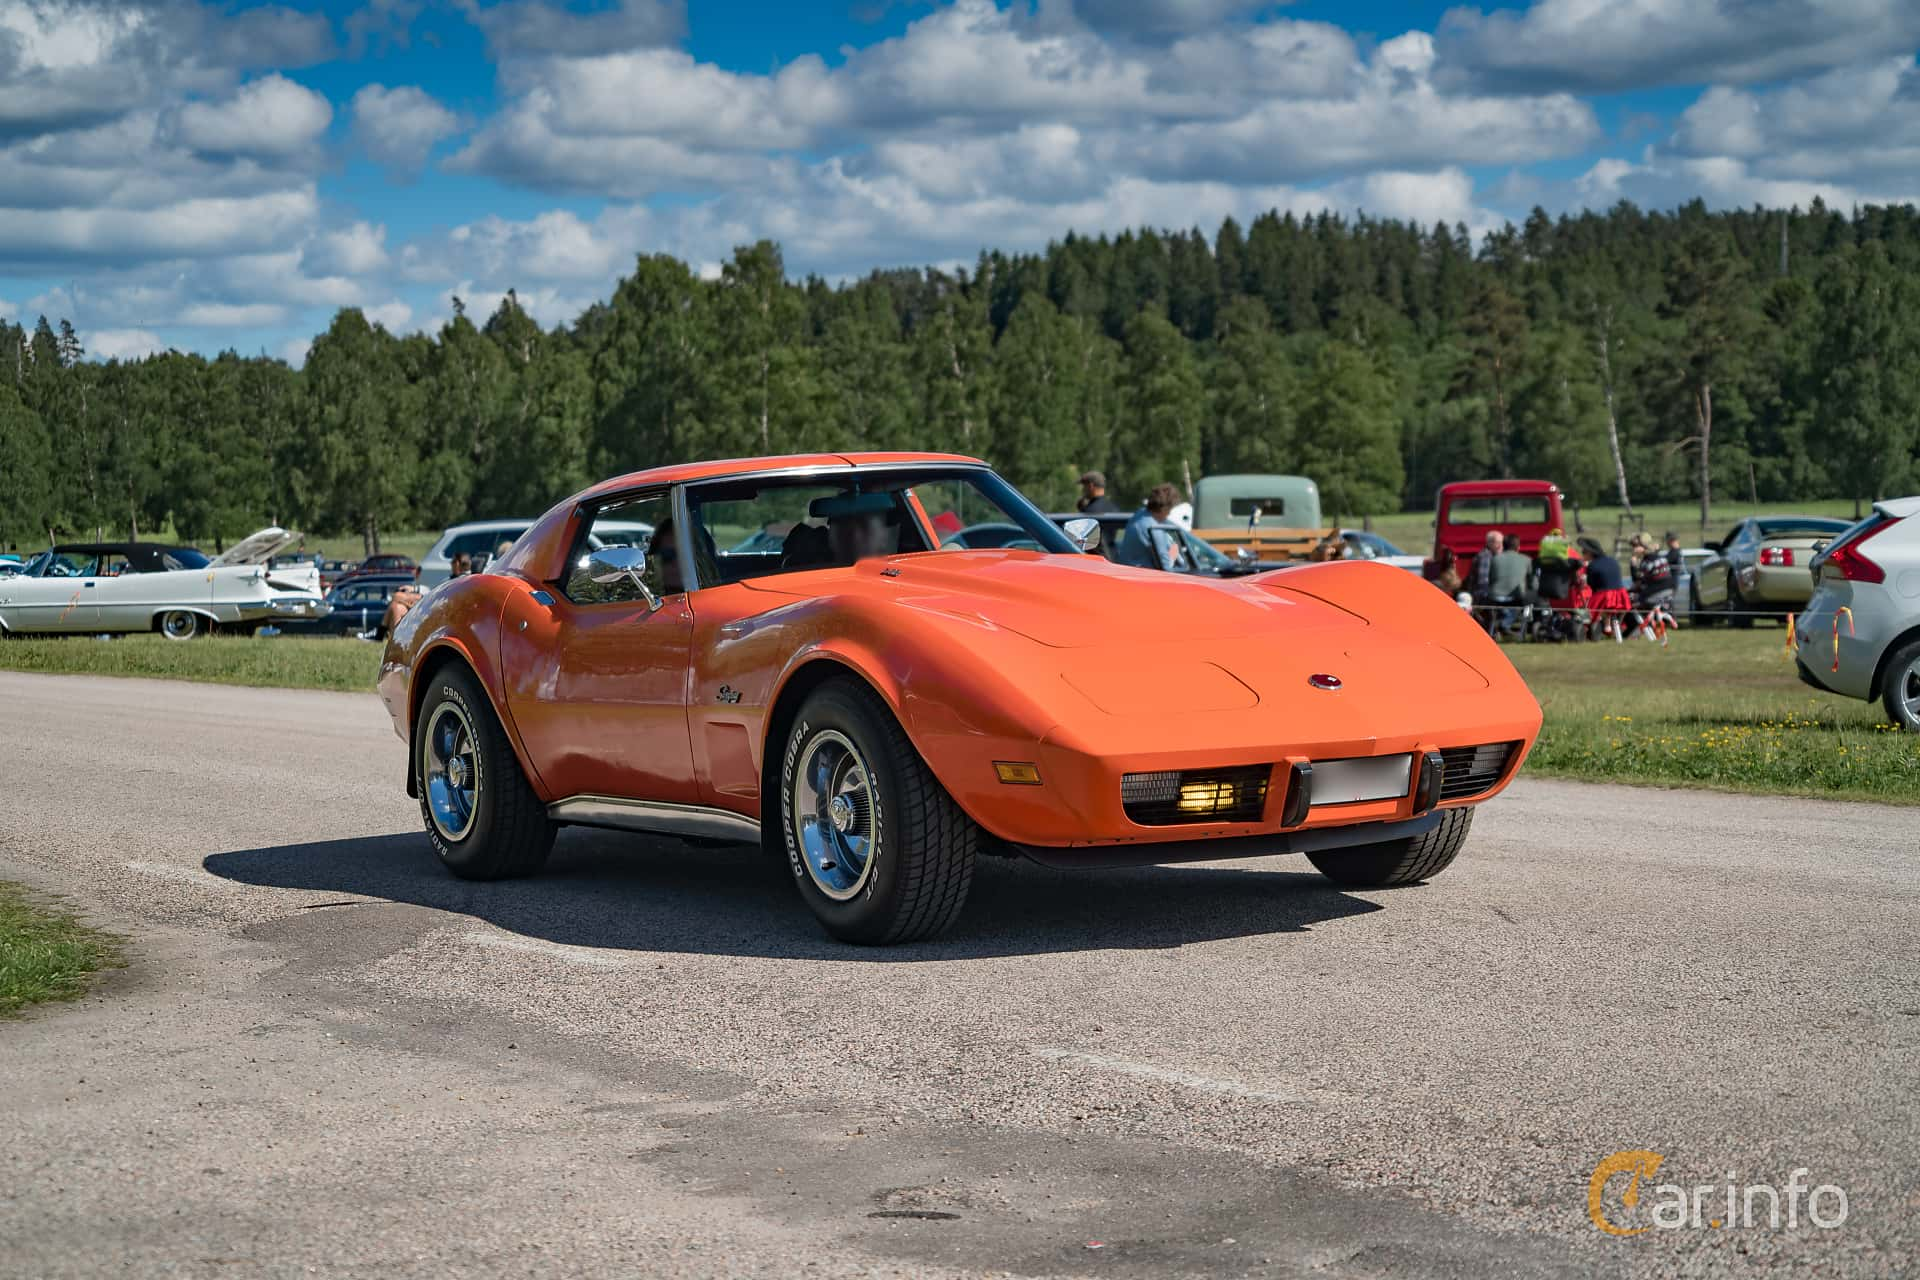 Chevrolet Corvette Stingray 5.7 V8 Automatic, 213hp, 1976 at Nostalgifestivalen i Vårgårda 2017